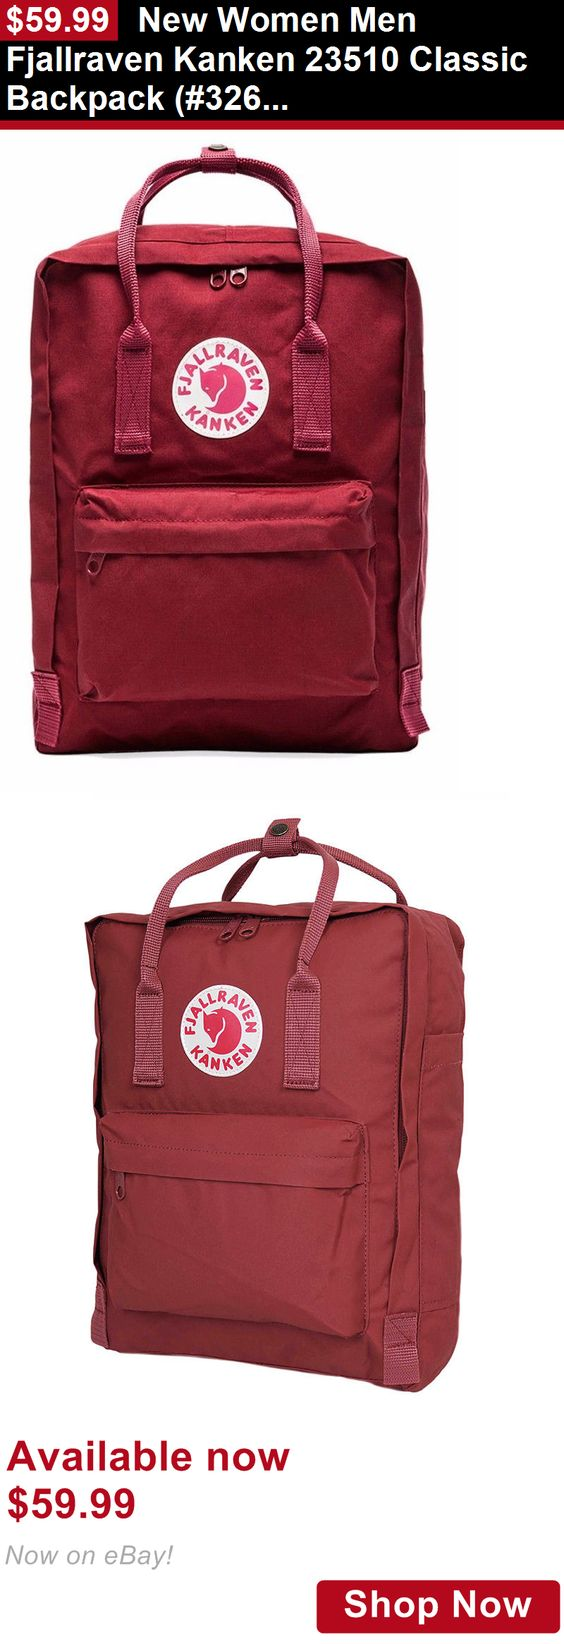 Unisex accessories: New Women Men Fjallraven Kanken 23510 Classic Backpack (#326 Ox Red) BUY IT NOW ONLY: $59.99